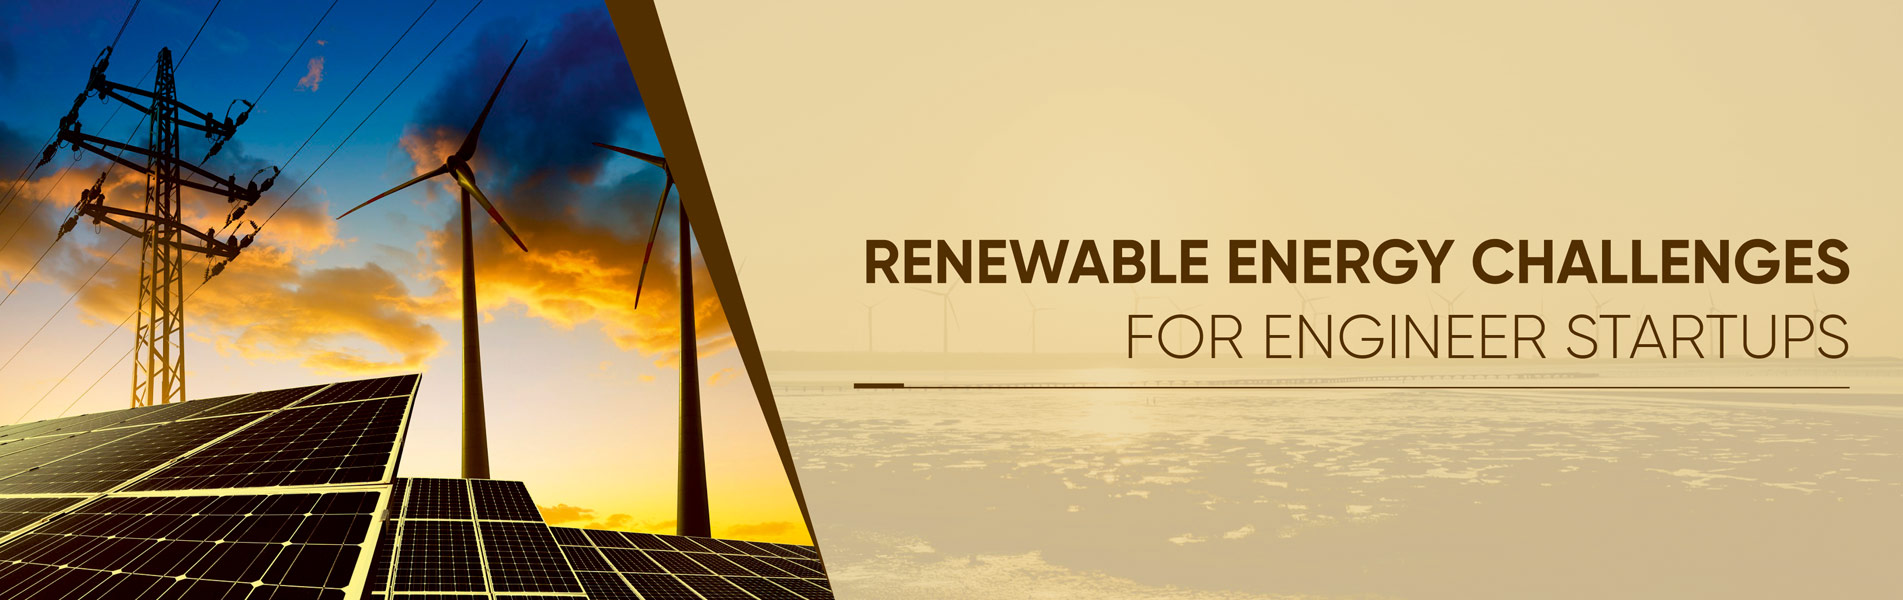 Renewable energy challenges for engineer startups